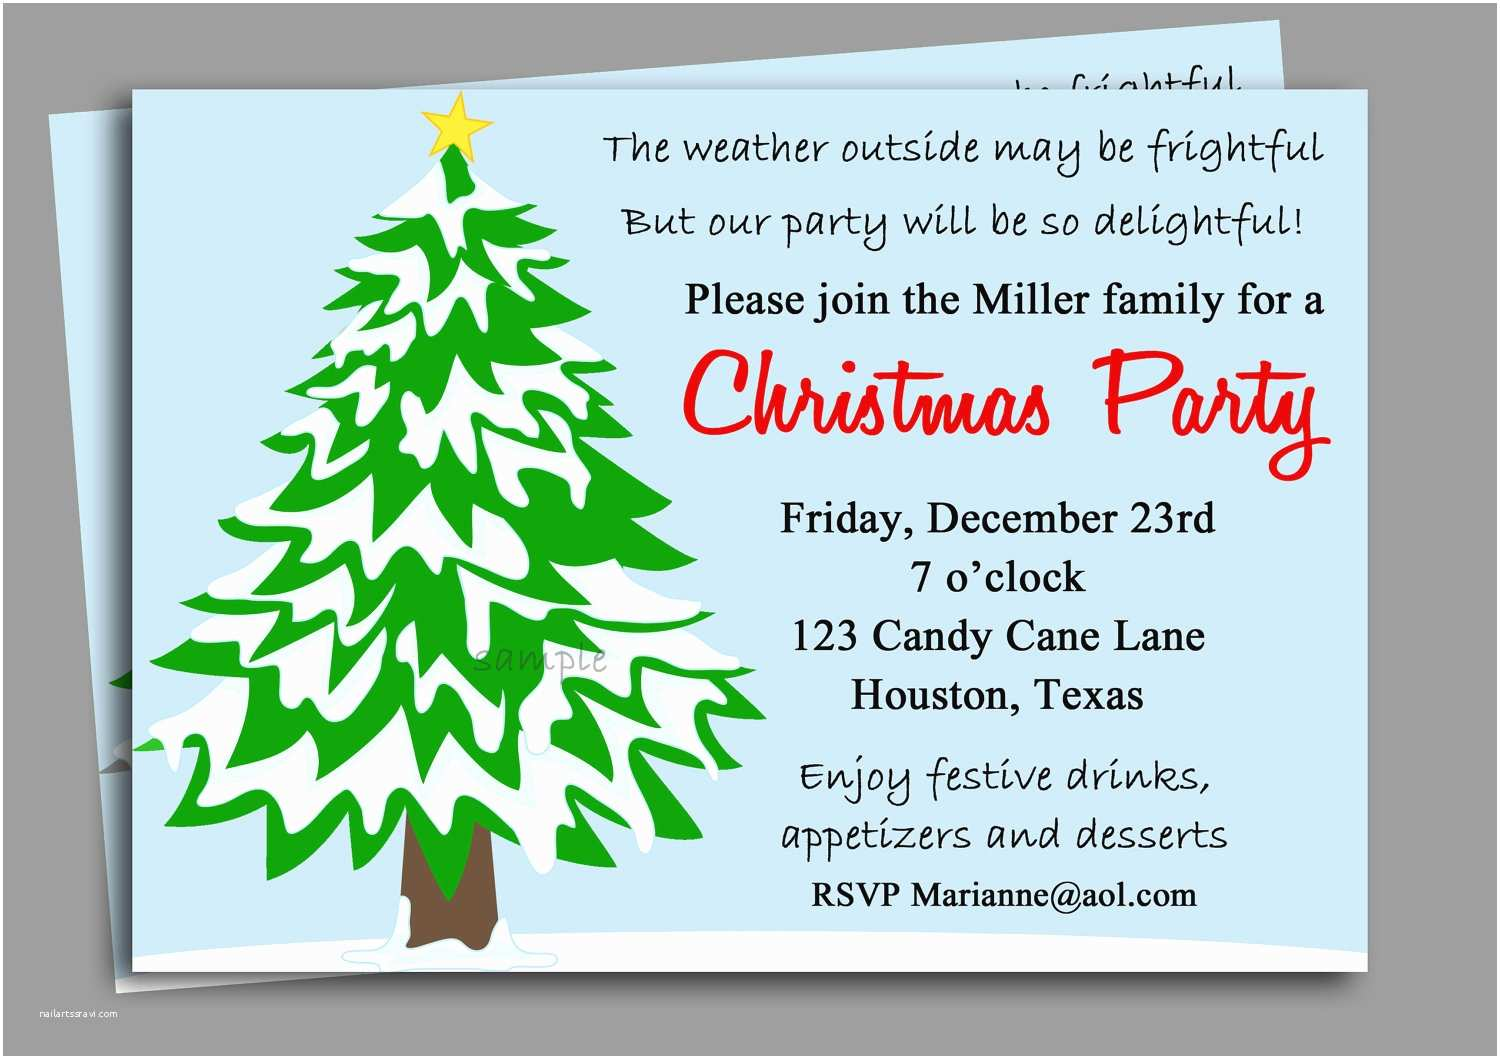 Christmas Party Invitation Wording Funny Christmas Party Invitation Wording Ideas